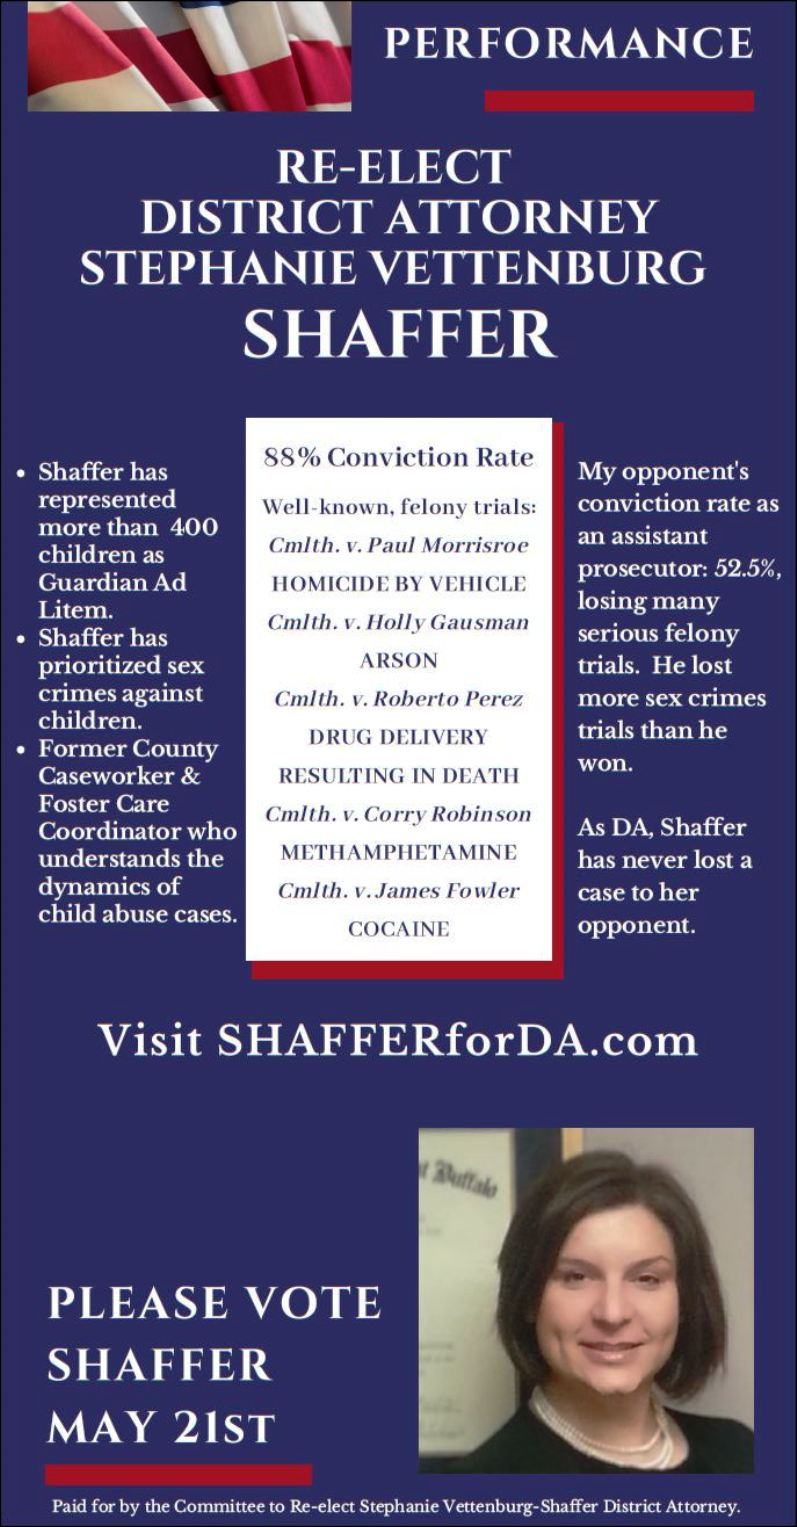 shafferforda.com